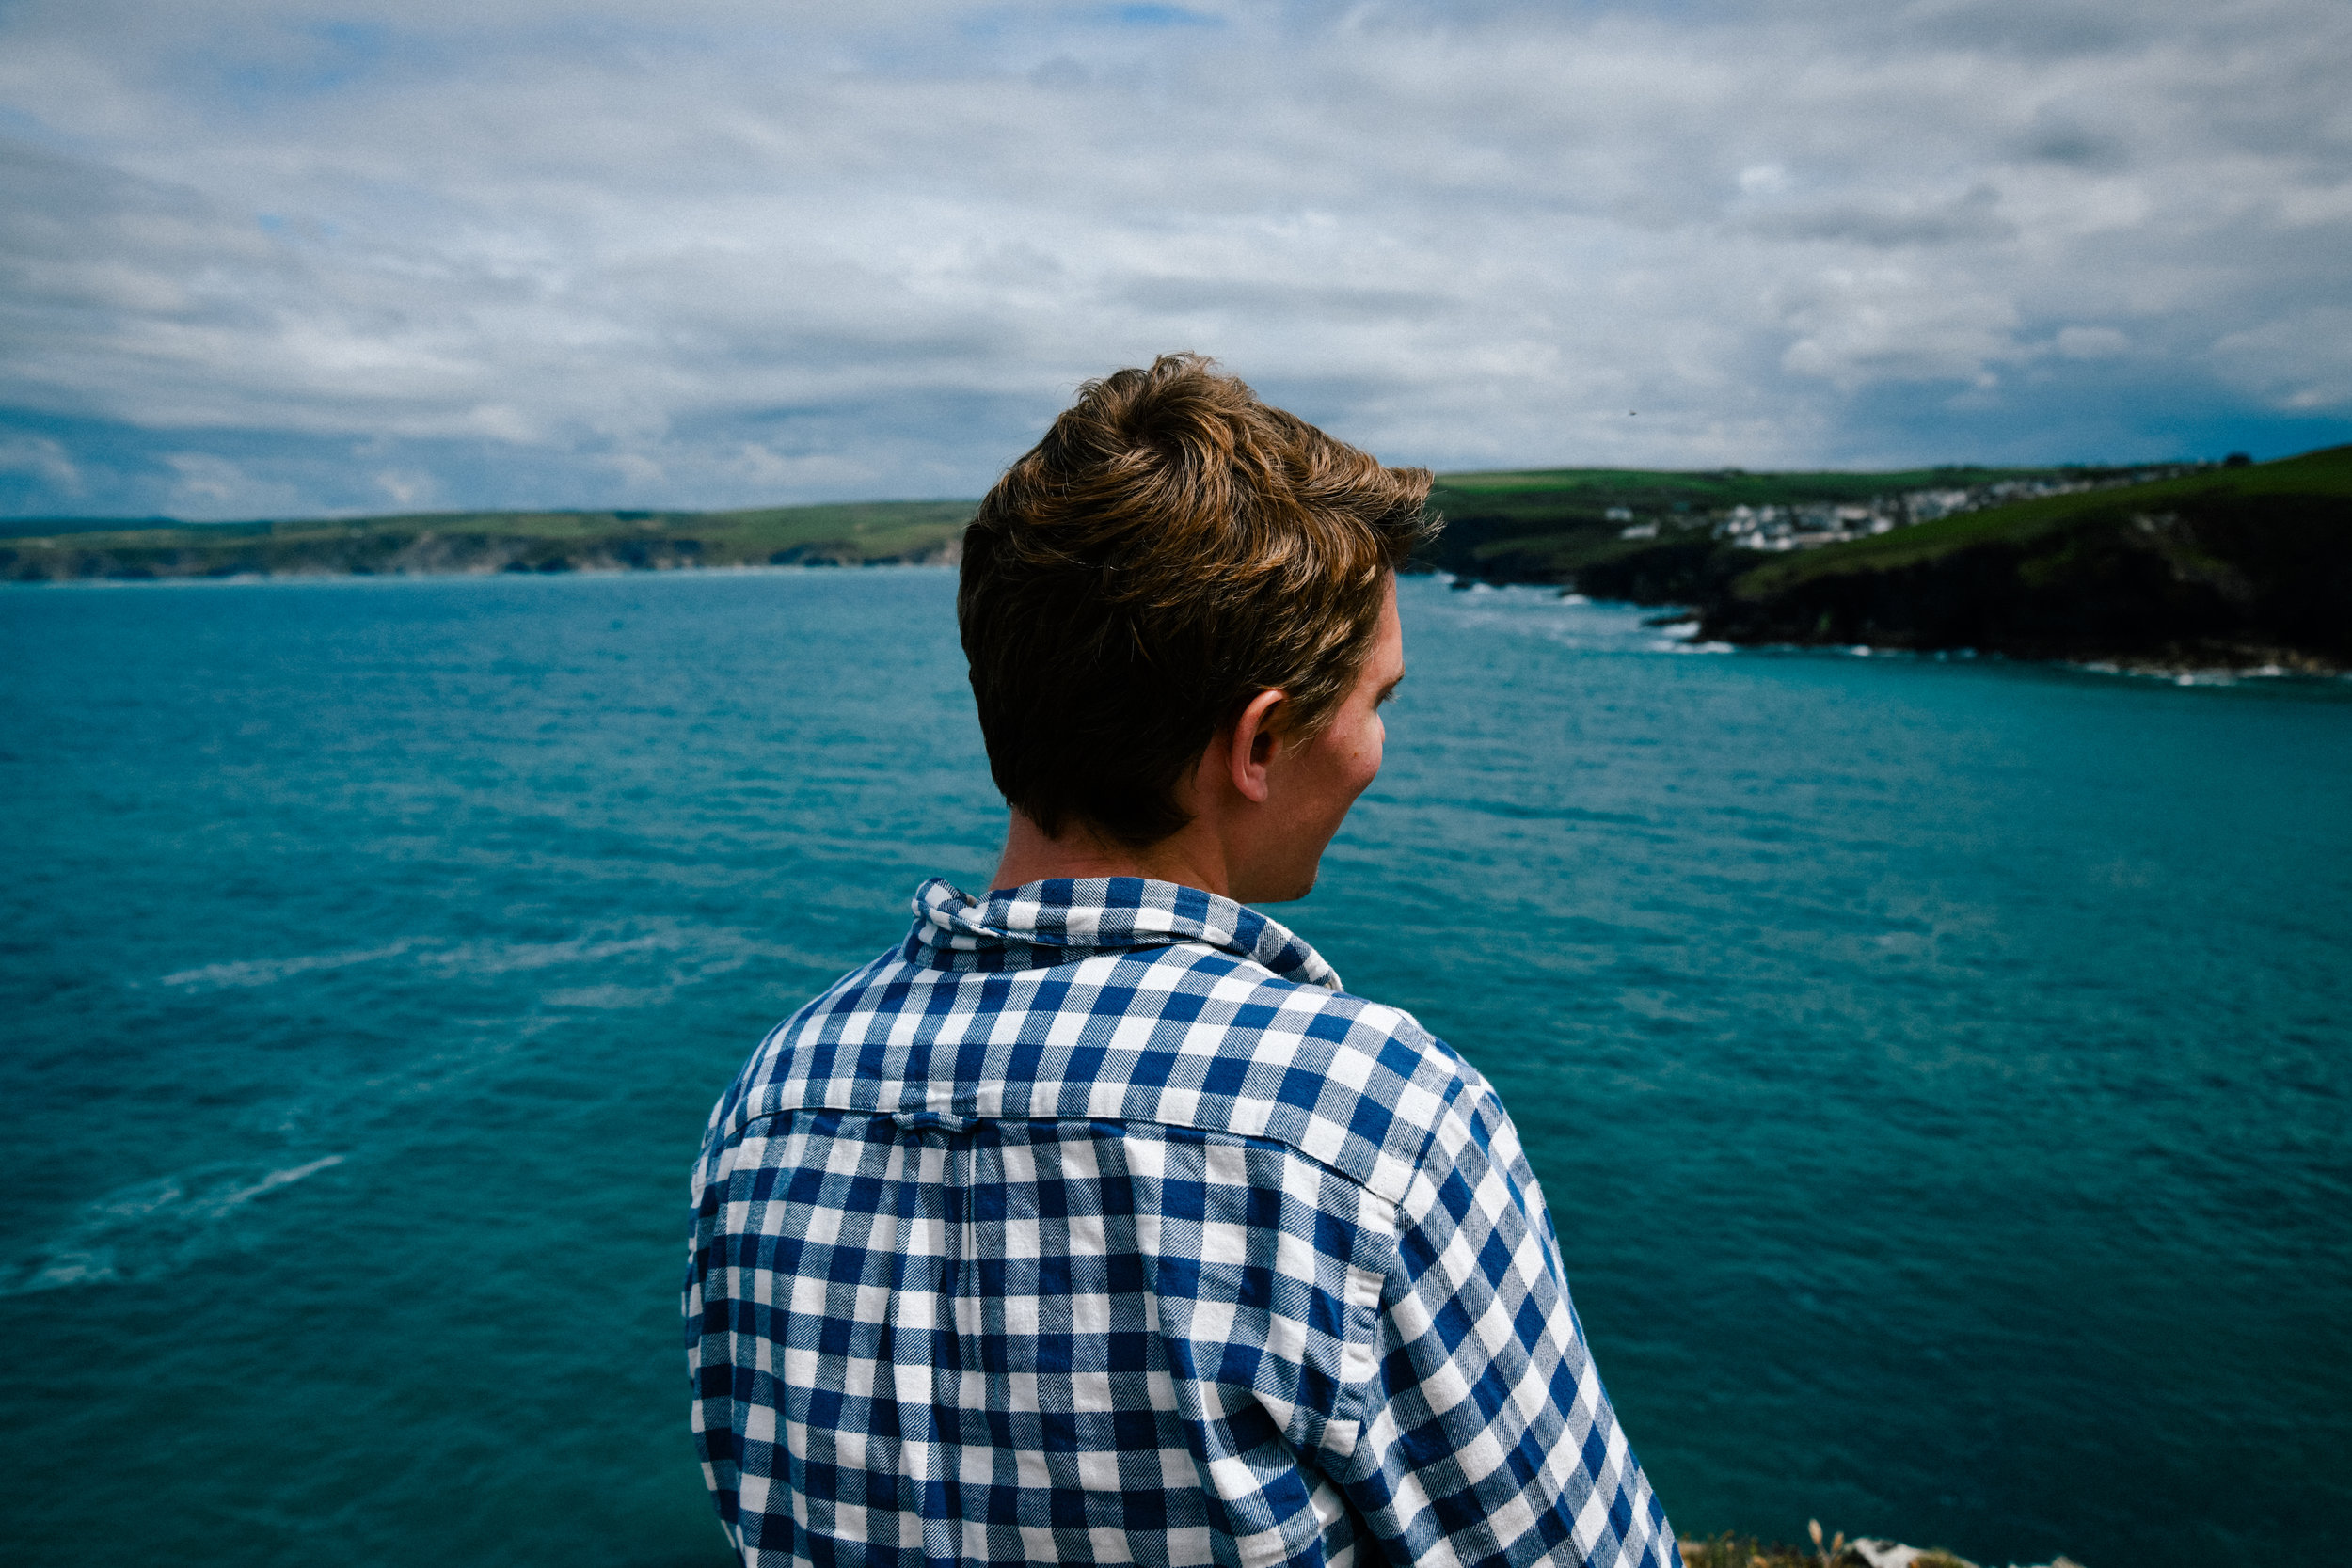 Peter and the port isaac coast